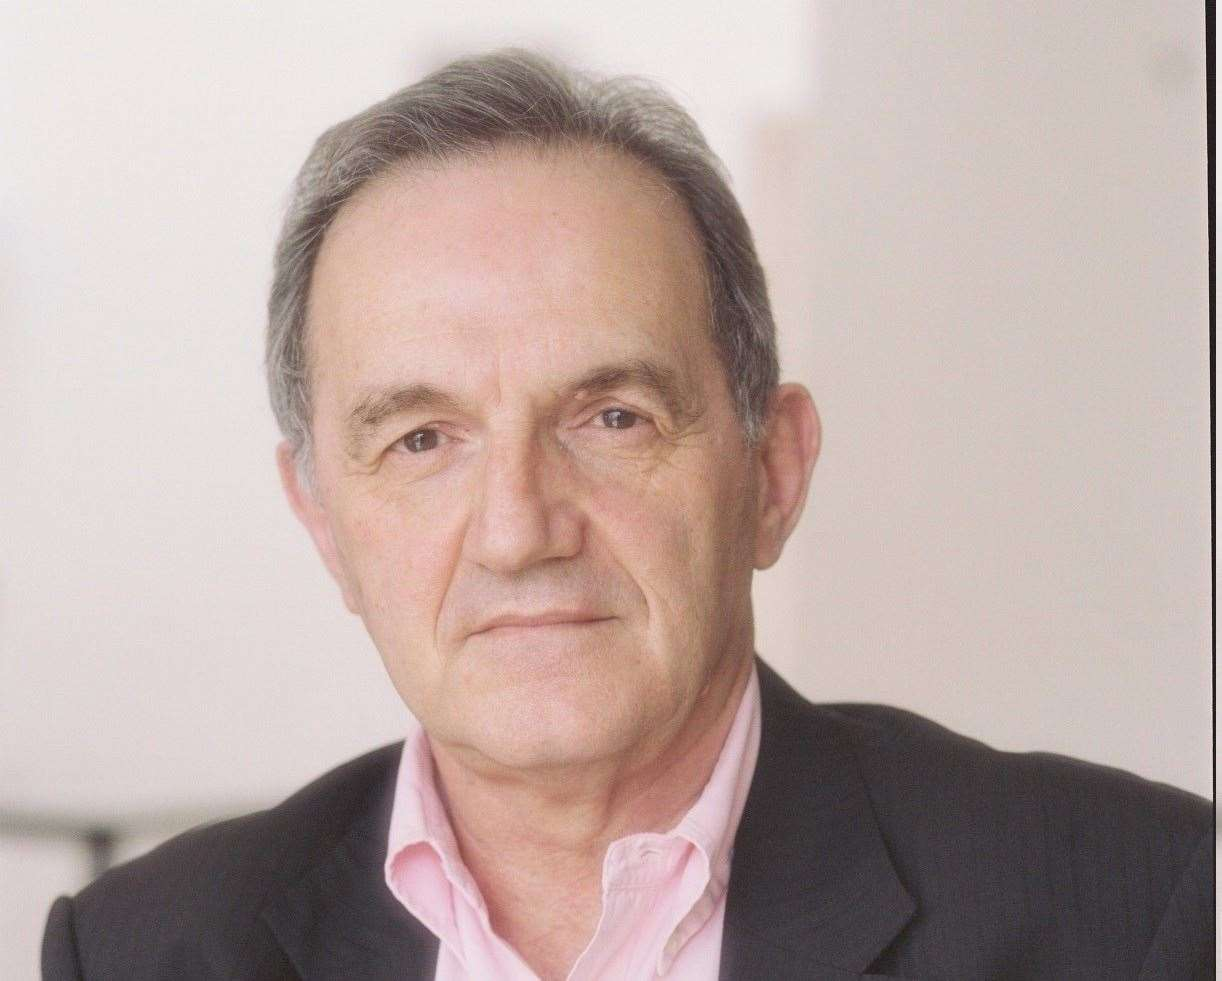 RiverOak spokesman Tony Freudman, who was chief executive of Manston Airport from 1997 to 2004